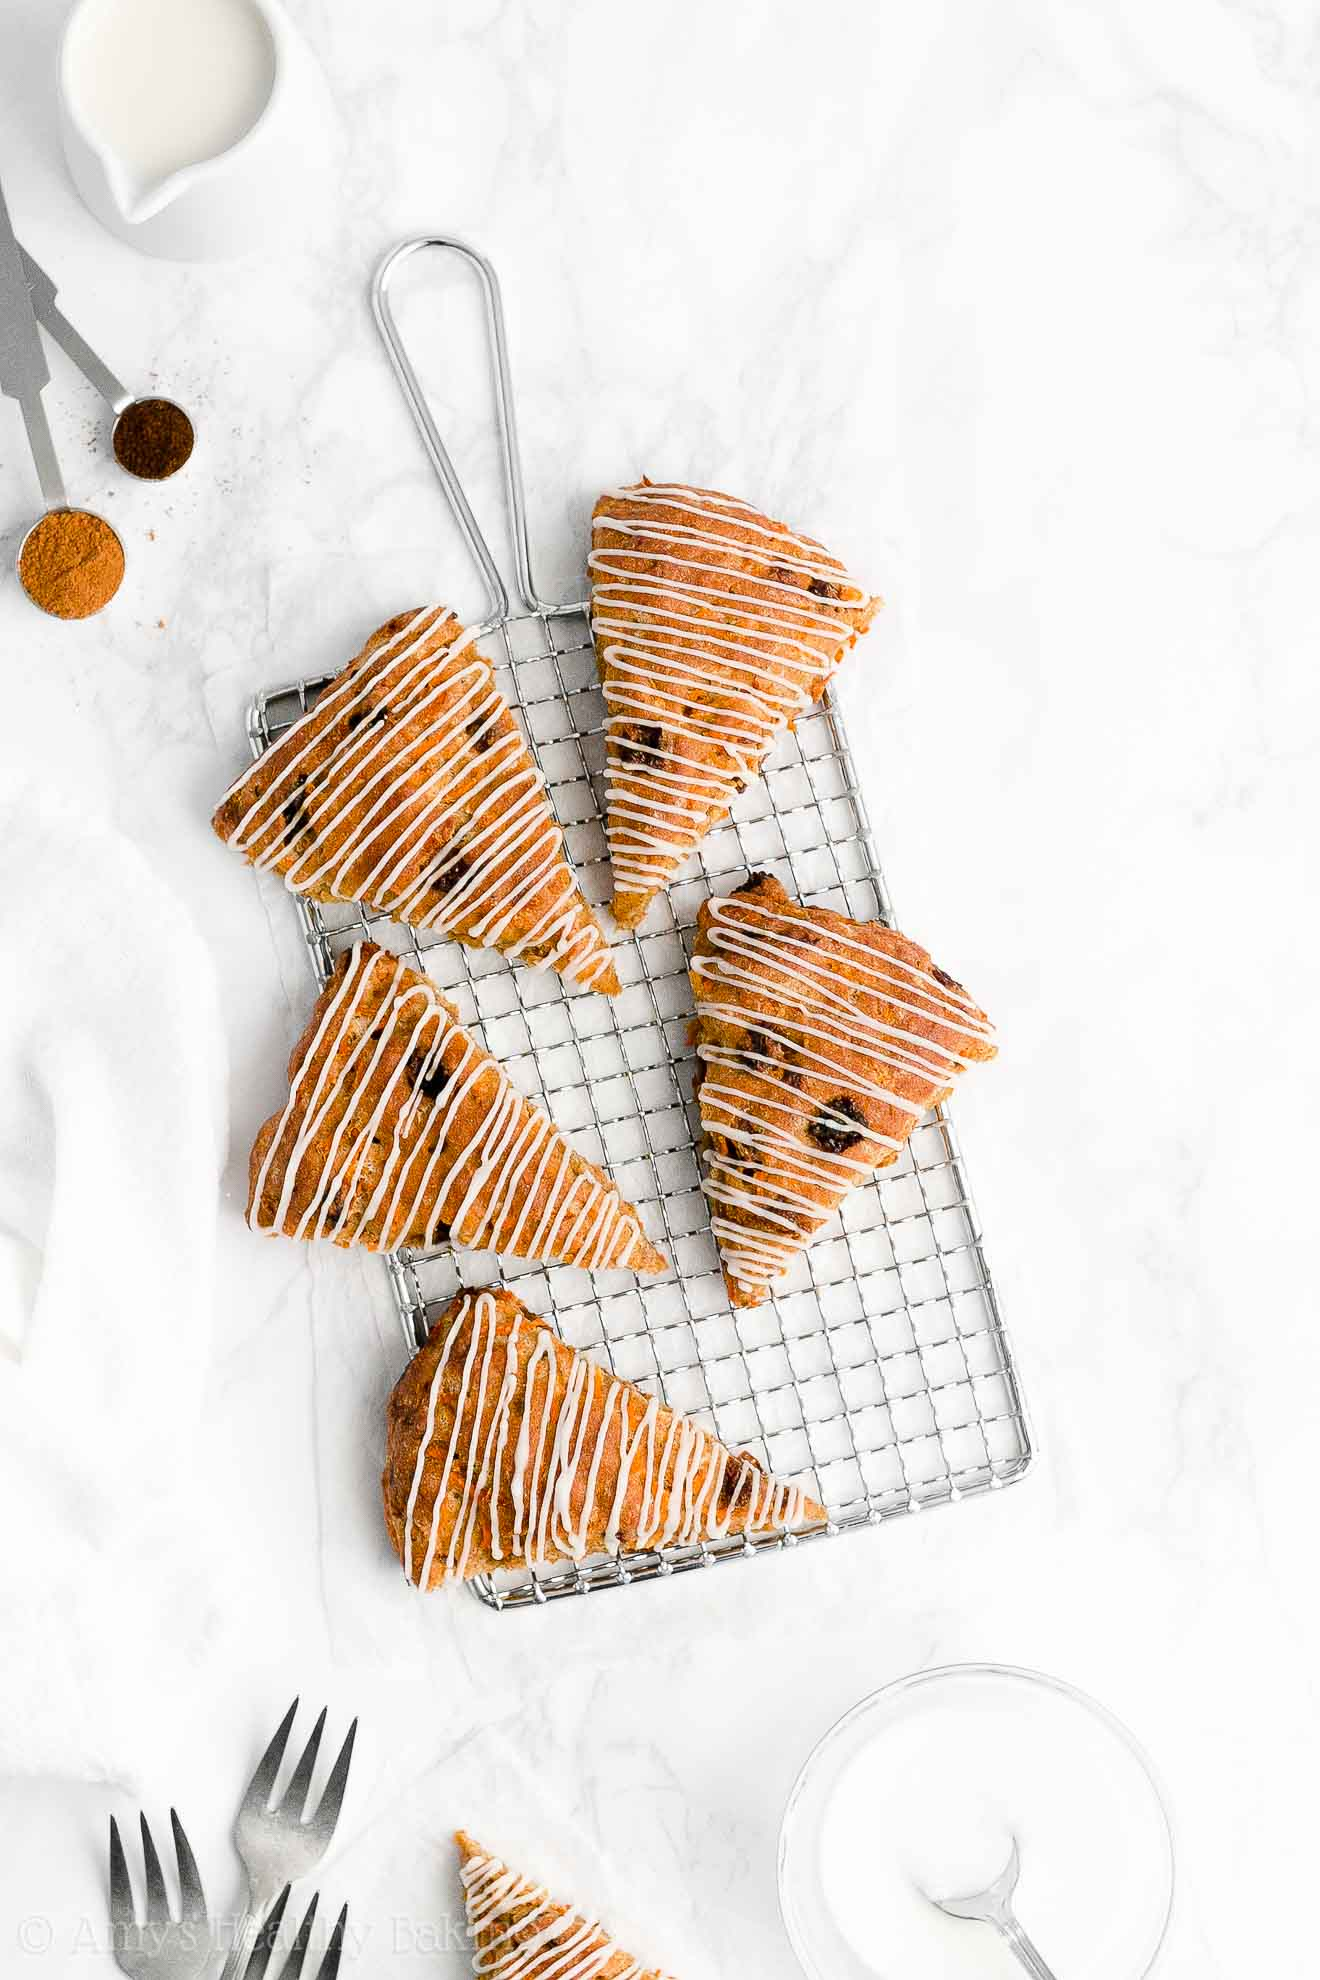 Easy Healthy Clean Eating Low Calorie Greek Yogurt Chai Spice Carrot Raisin Scones